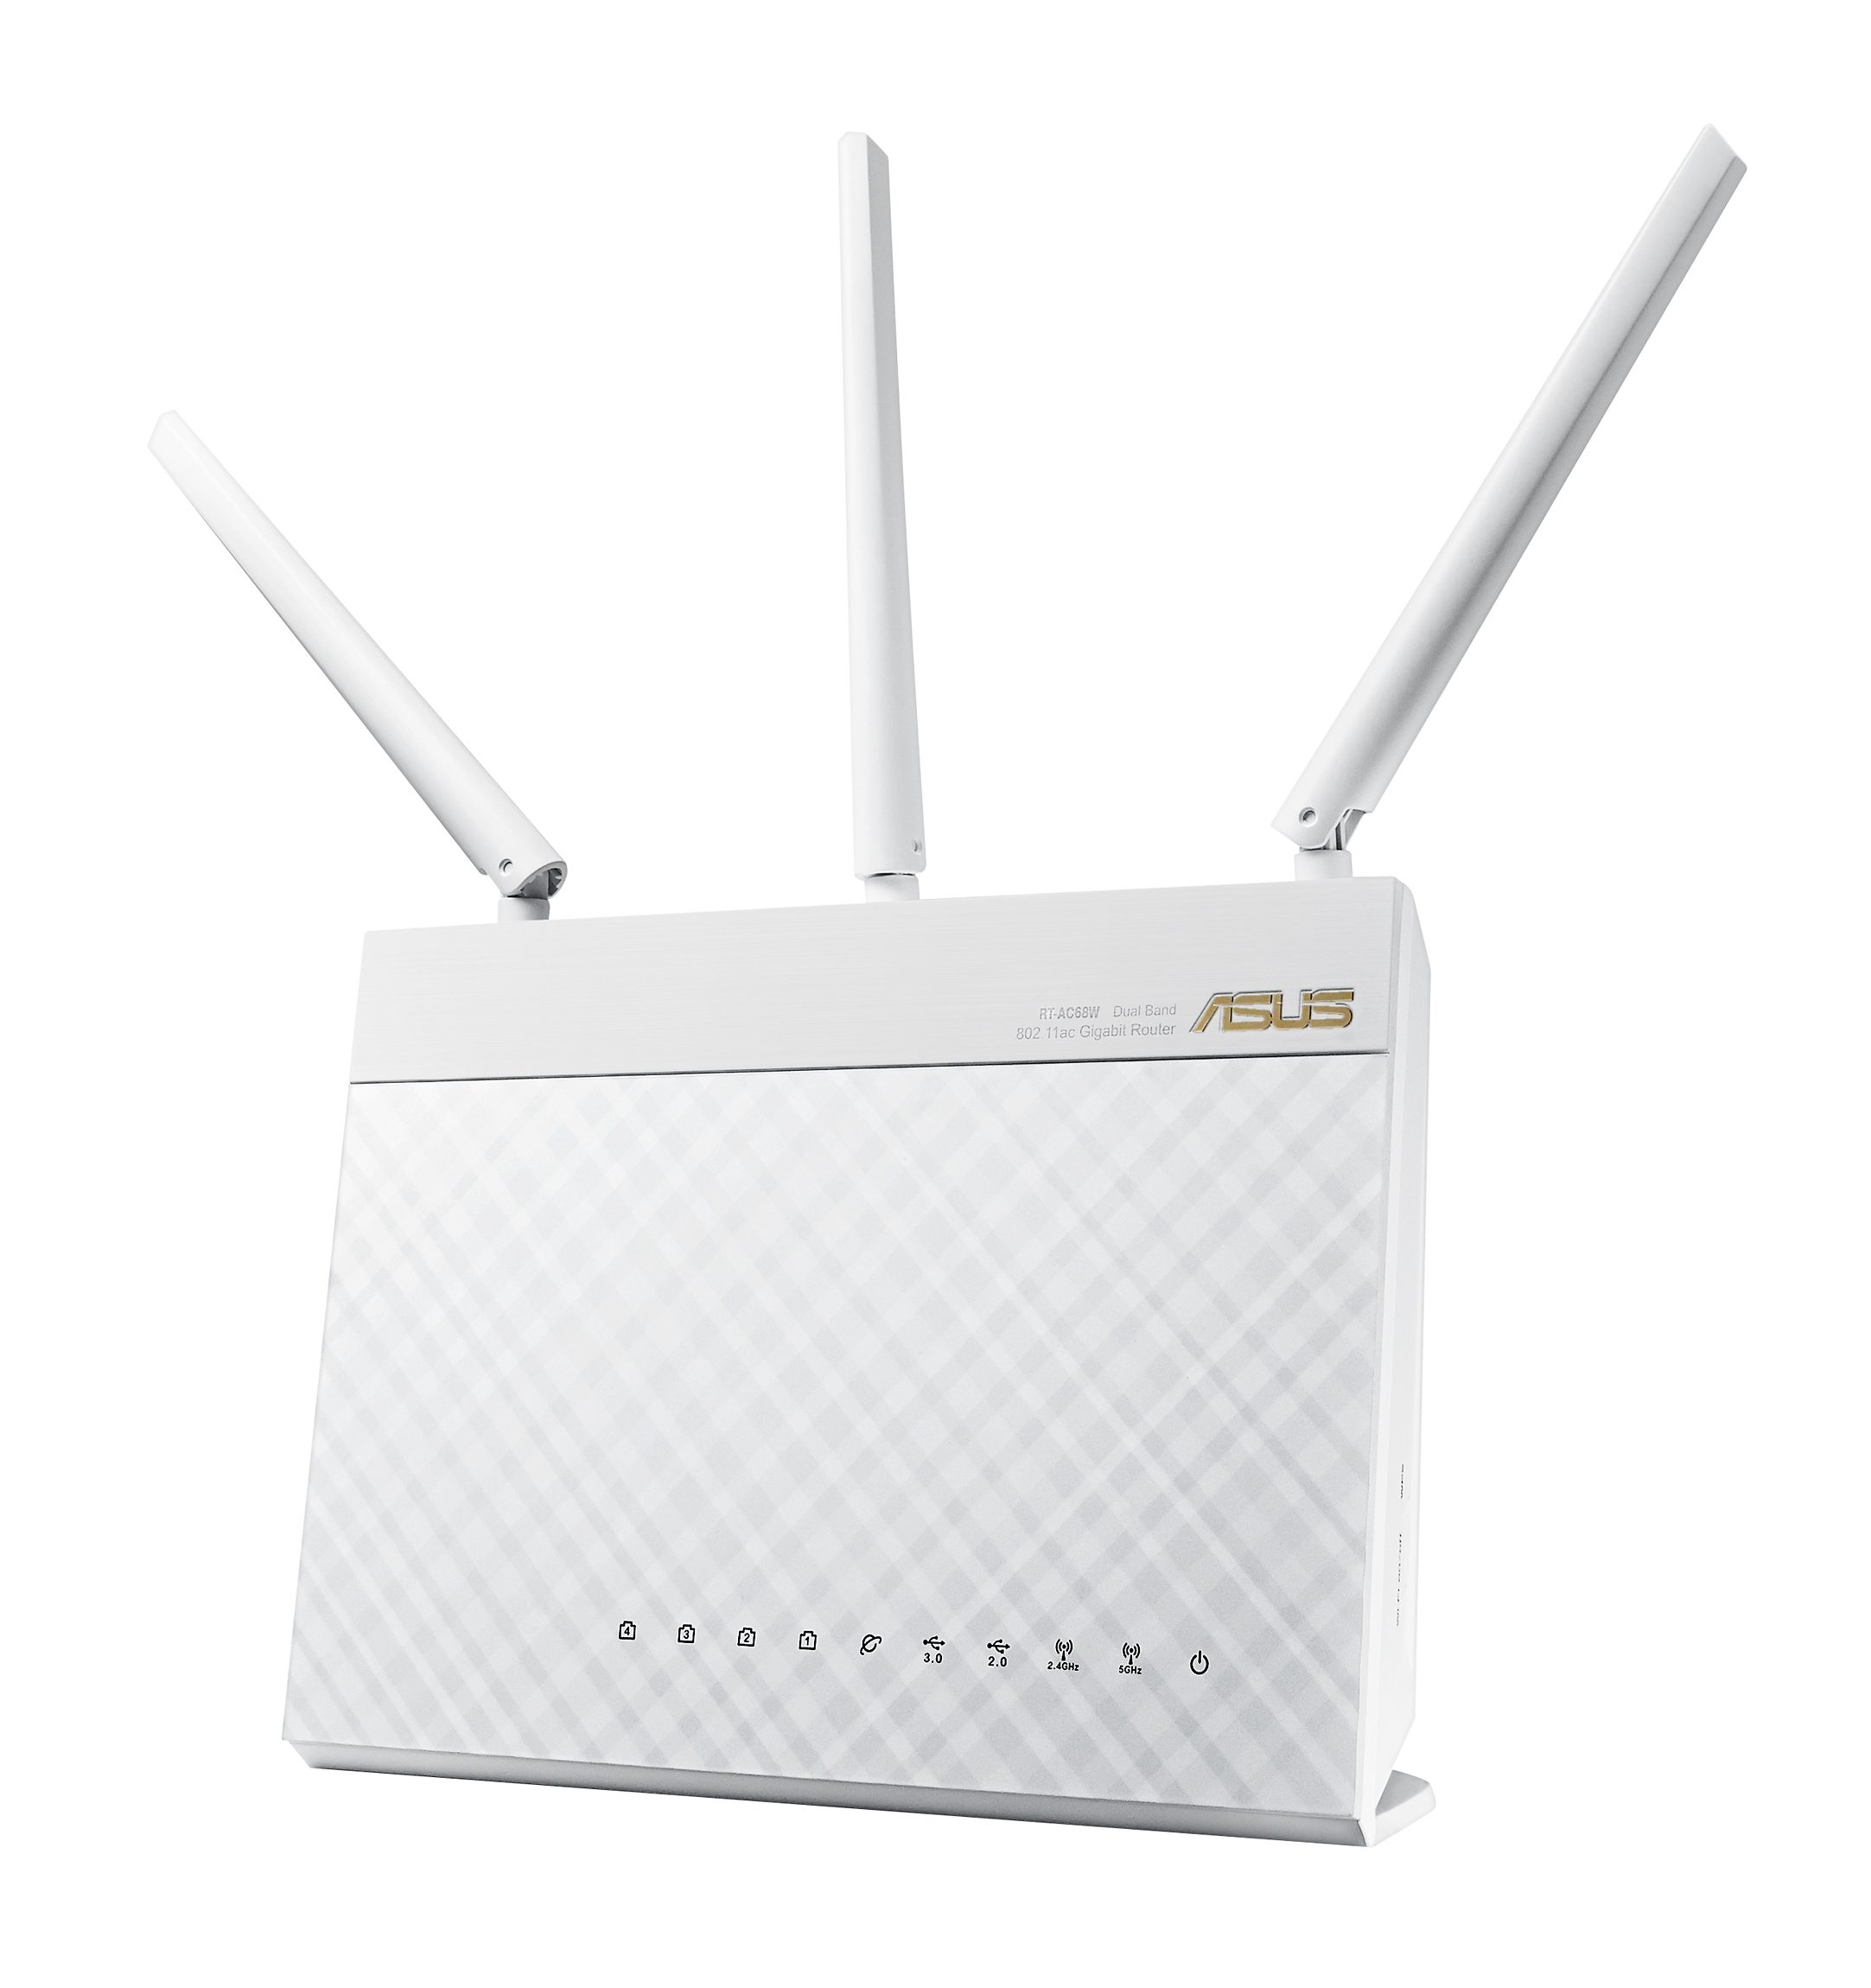 ASUS RT-AC68U White AC1900 Gigabit WLAN Router